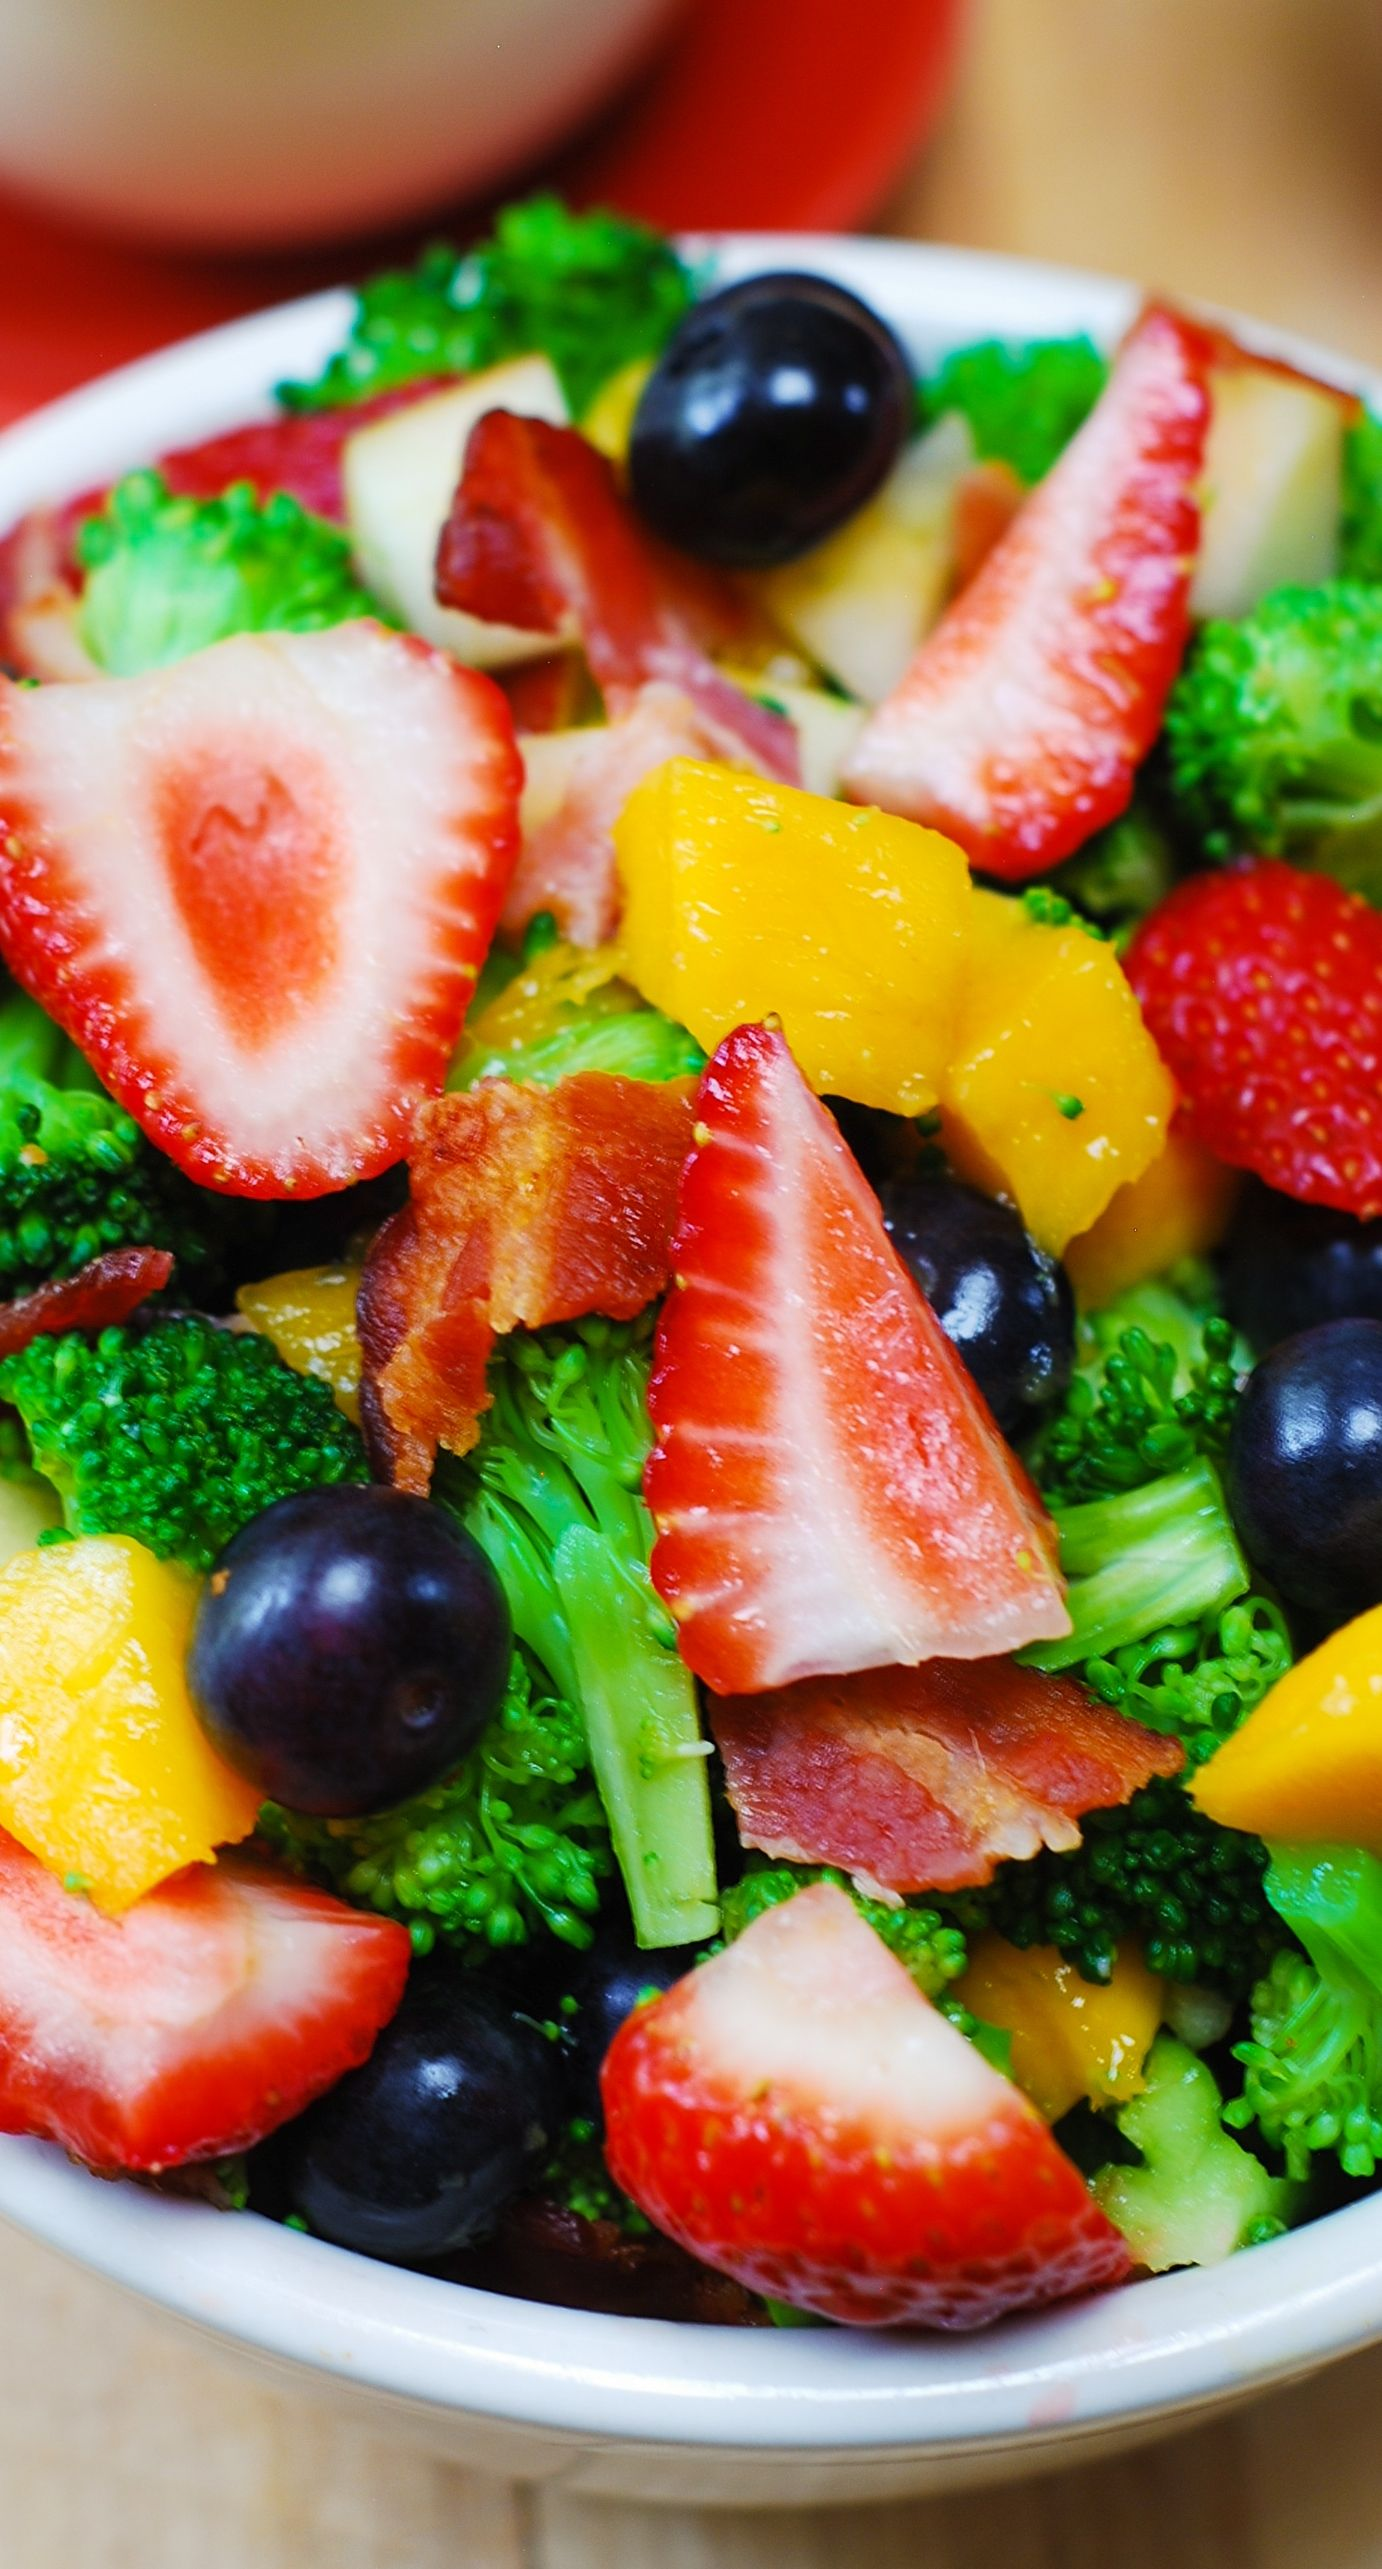 Broccoli salad with strawberries, blueberries, mango, apples, and bacon, with creamy homemade salad dressing! #gluten_free #summer_salads #healthy_ingredients